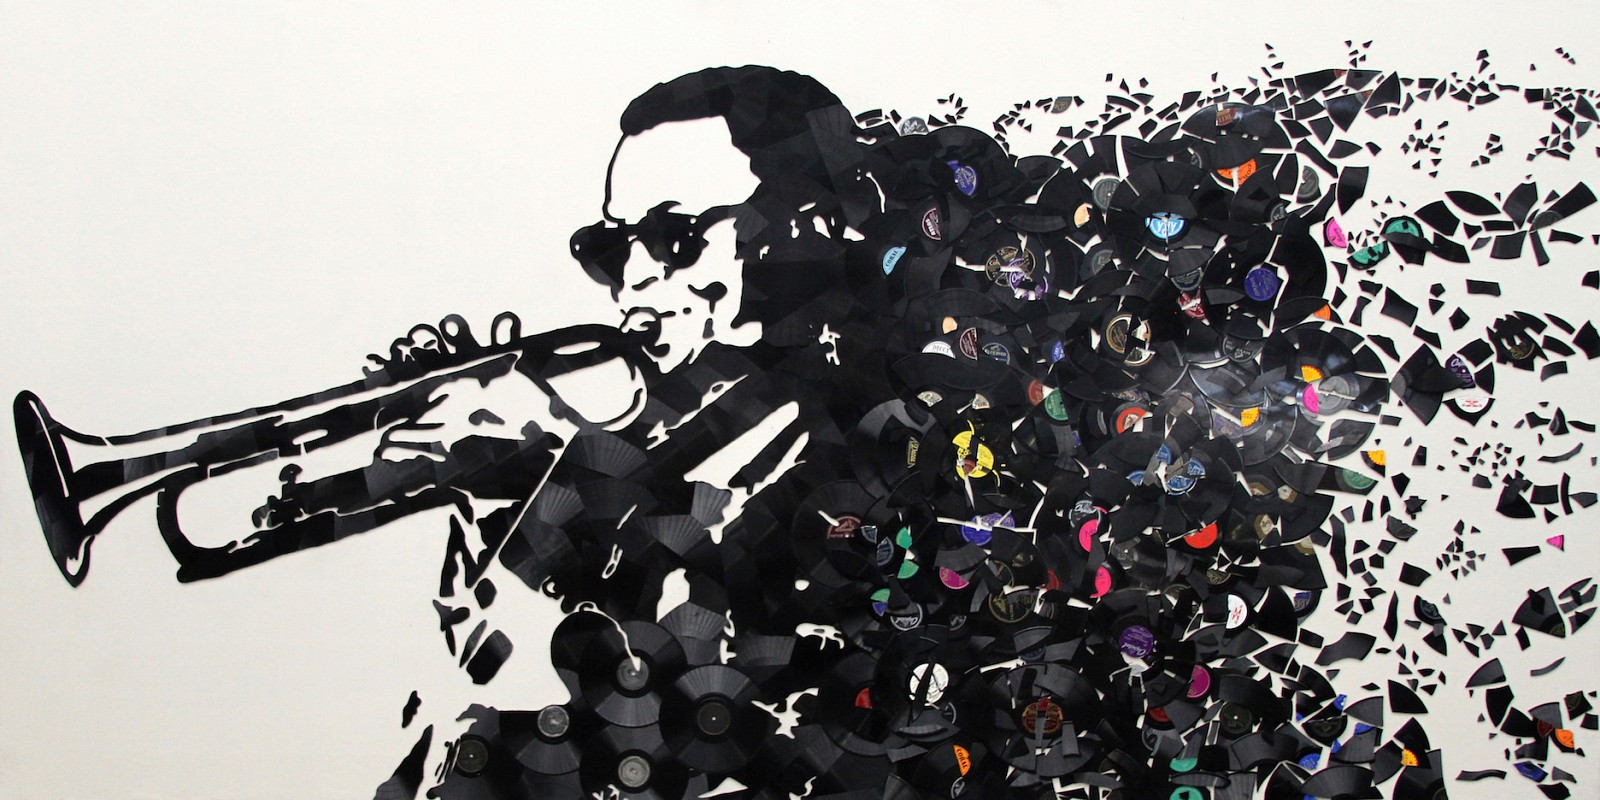 Mr. Brainwash ,   Miles Davis  ,  2018     72 x 144 inches